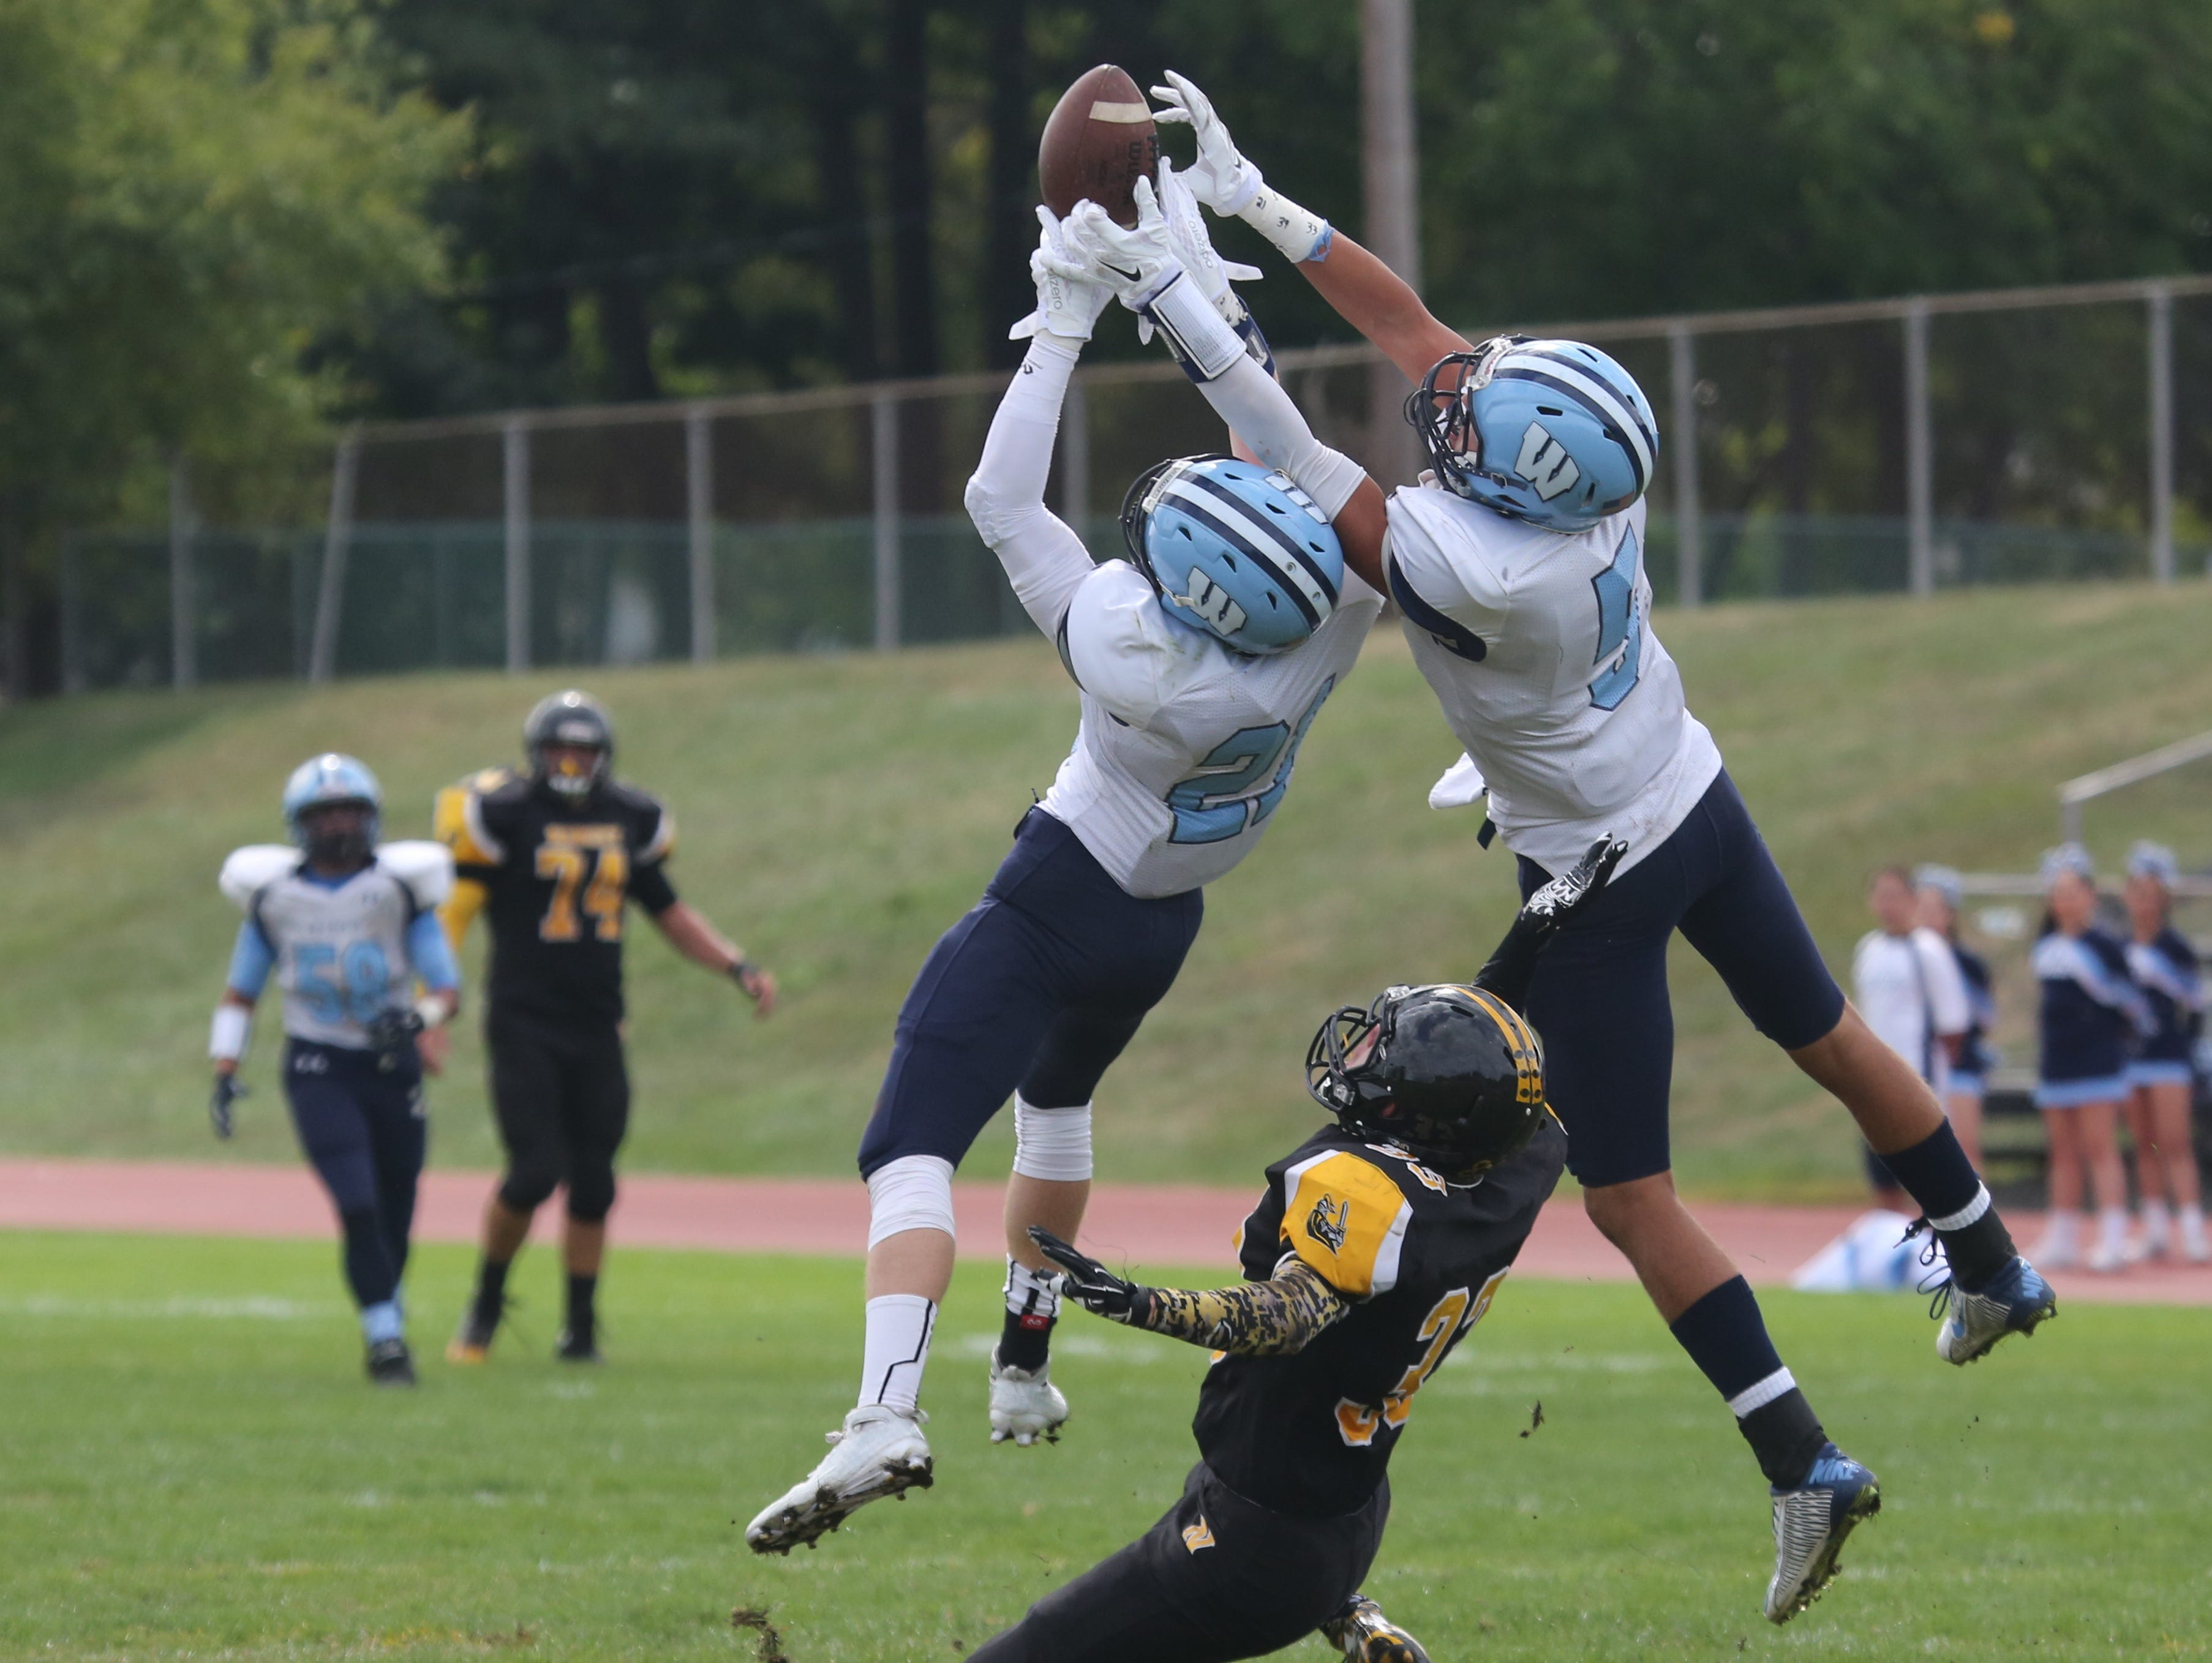 Westlake's Michael Love and William Snyder break up a pass intended for Nanuet's Brian McGreevy during action in the Nanuet vs. Westlake football game in Nanuet, Sept. 26, 2015.